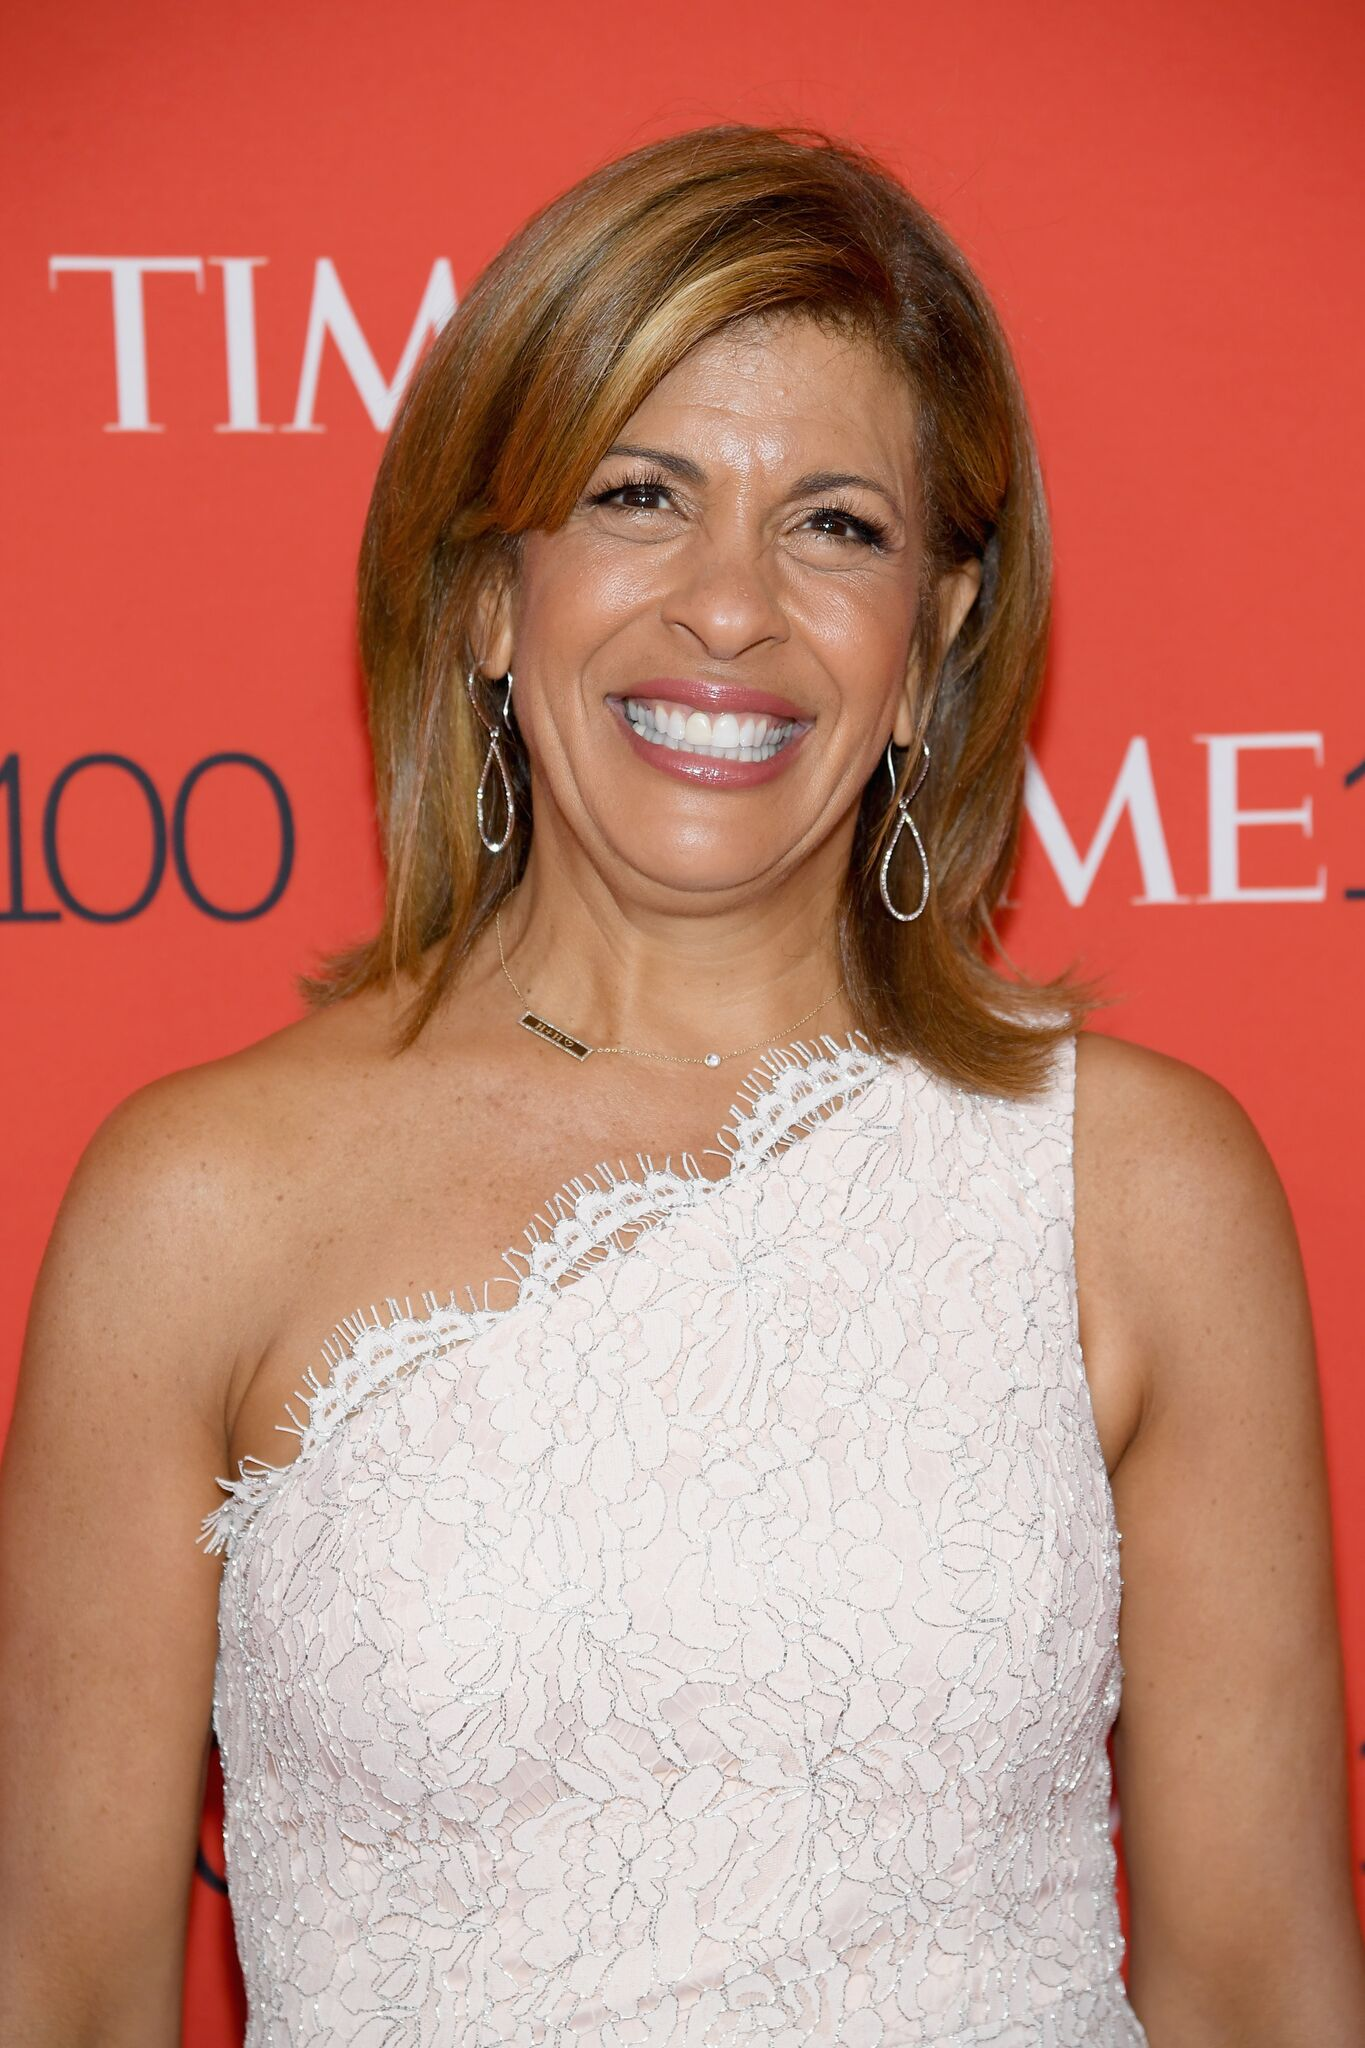 elevision host Hoda Kotb attends the 2018 Time 100 Gala at Jazz at Lincoln Center | Getty Images